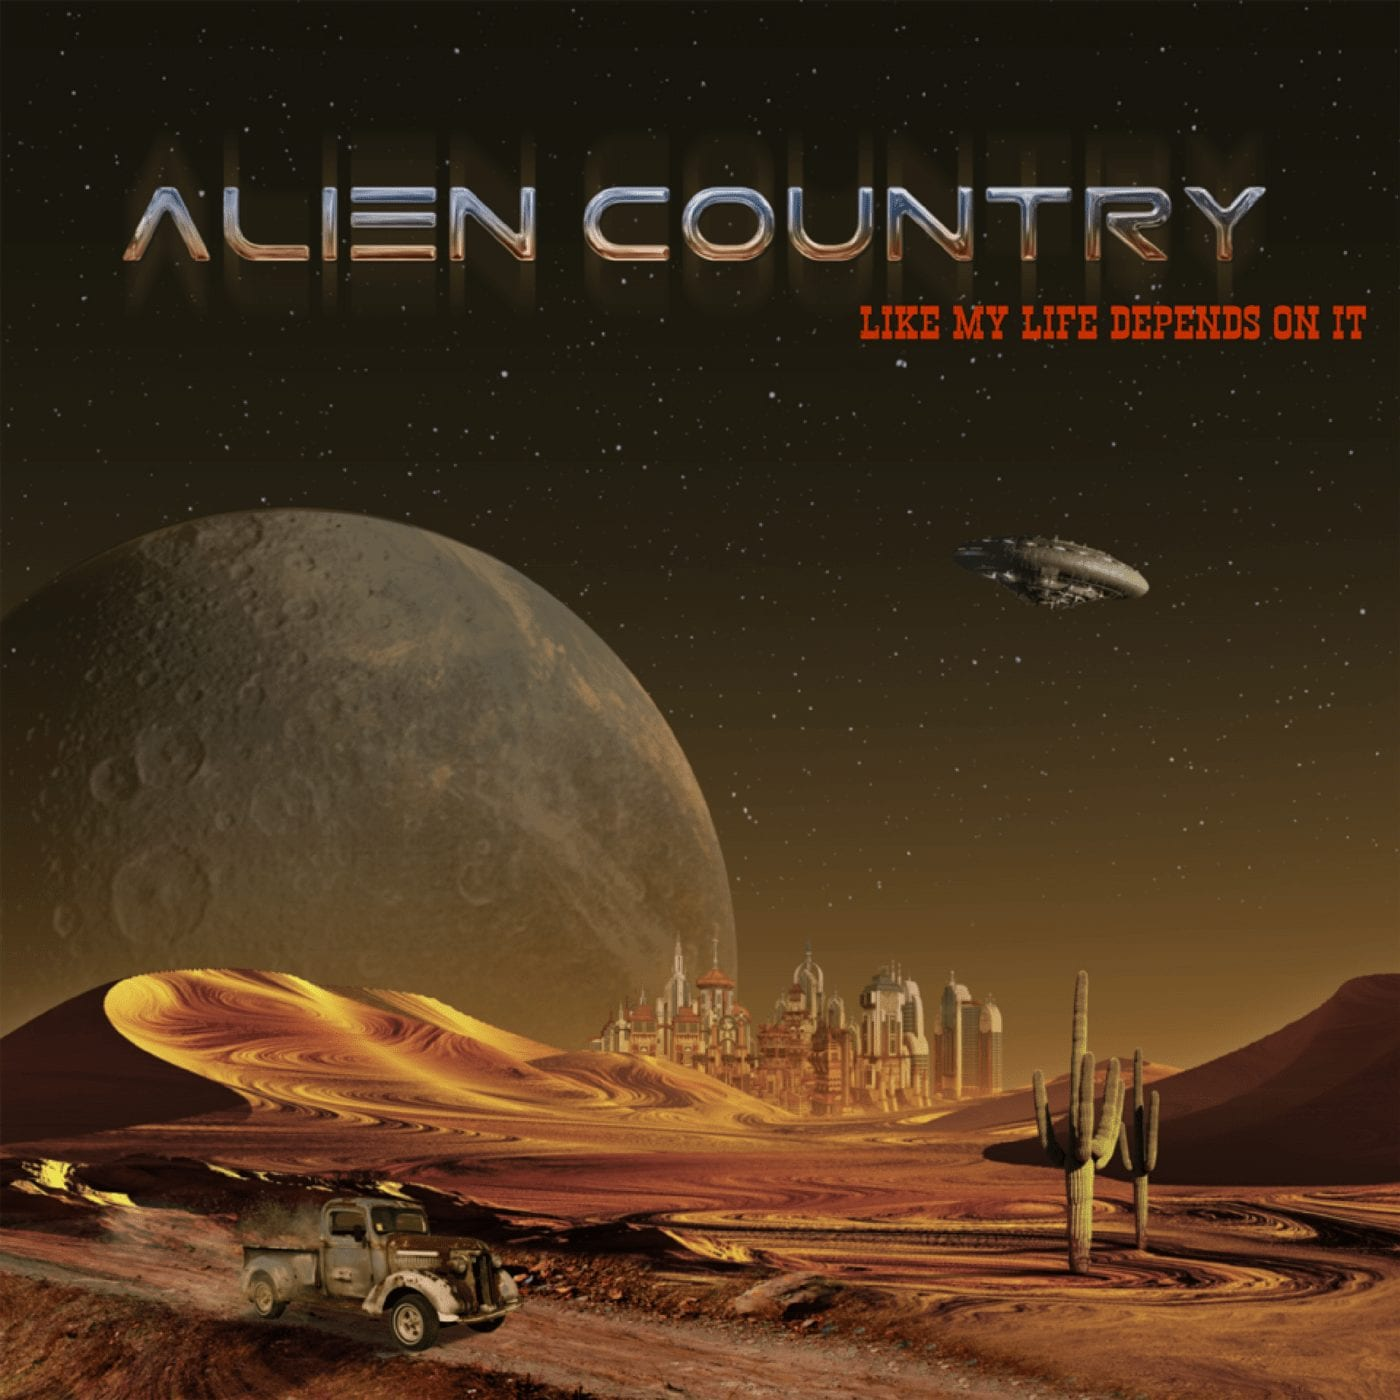 a vintage pickup truck drives down a dusty desert road of an alien red planet. Hank Williams